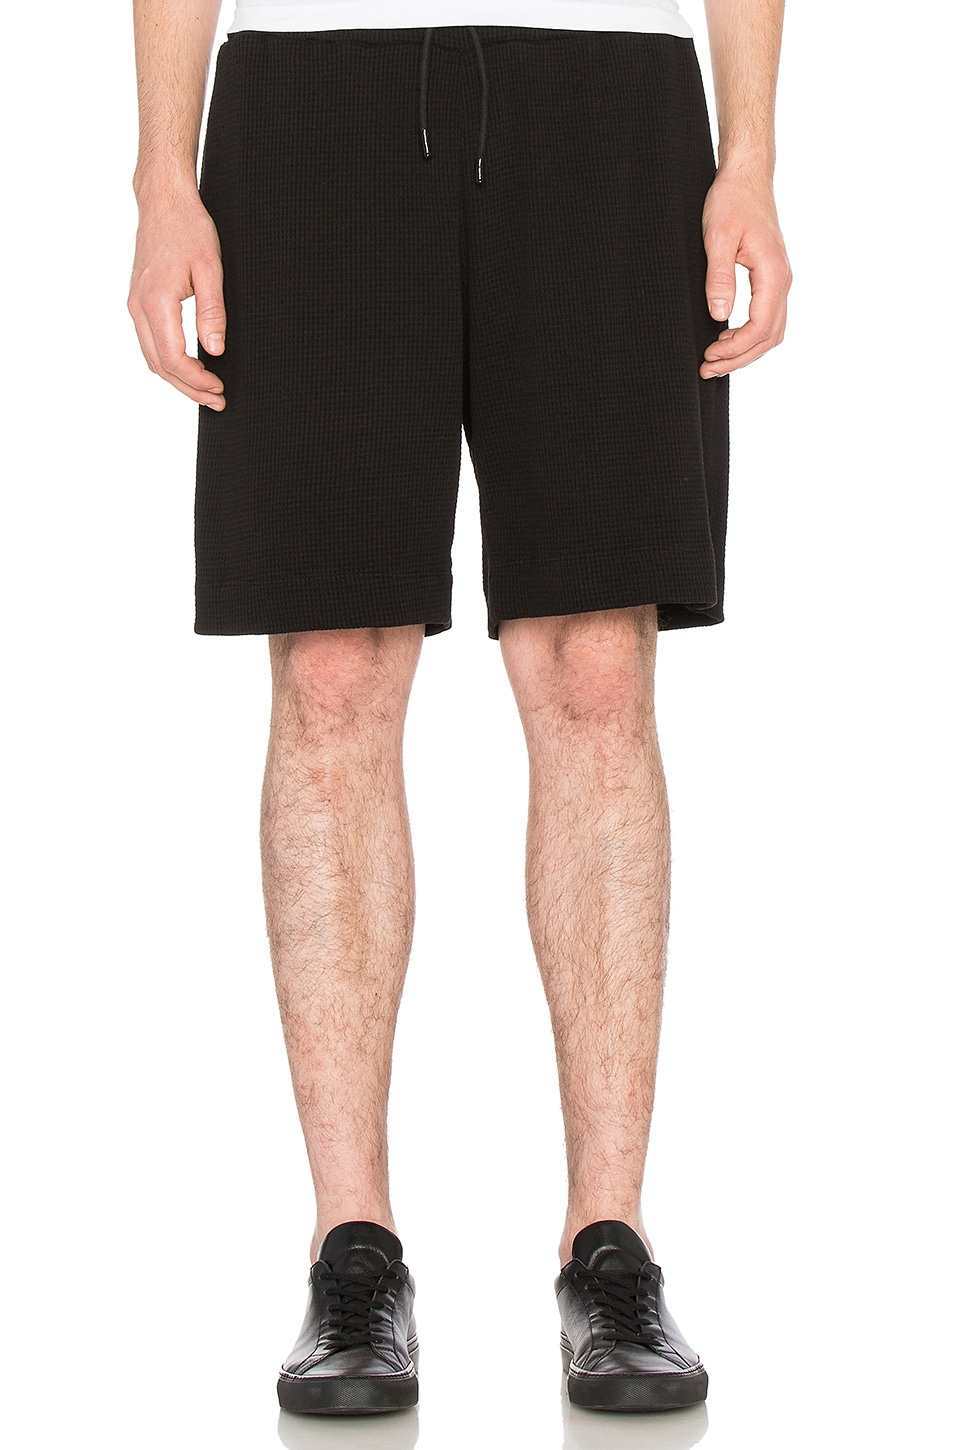 The Tyson Shorts by COTTON CITIZEN